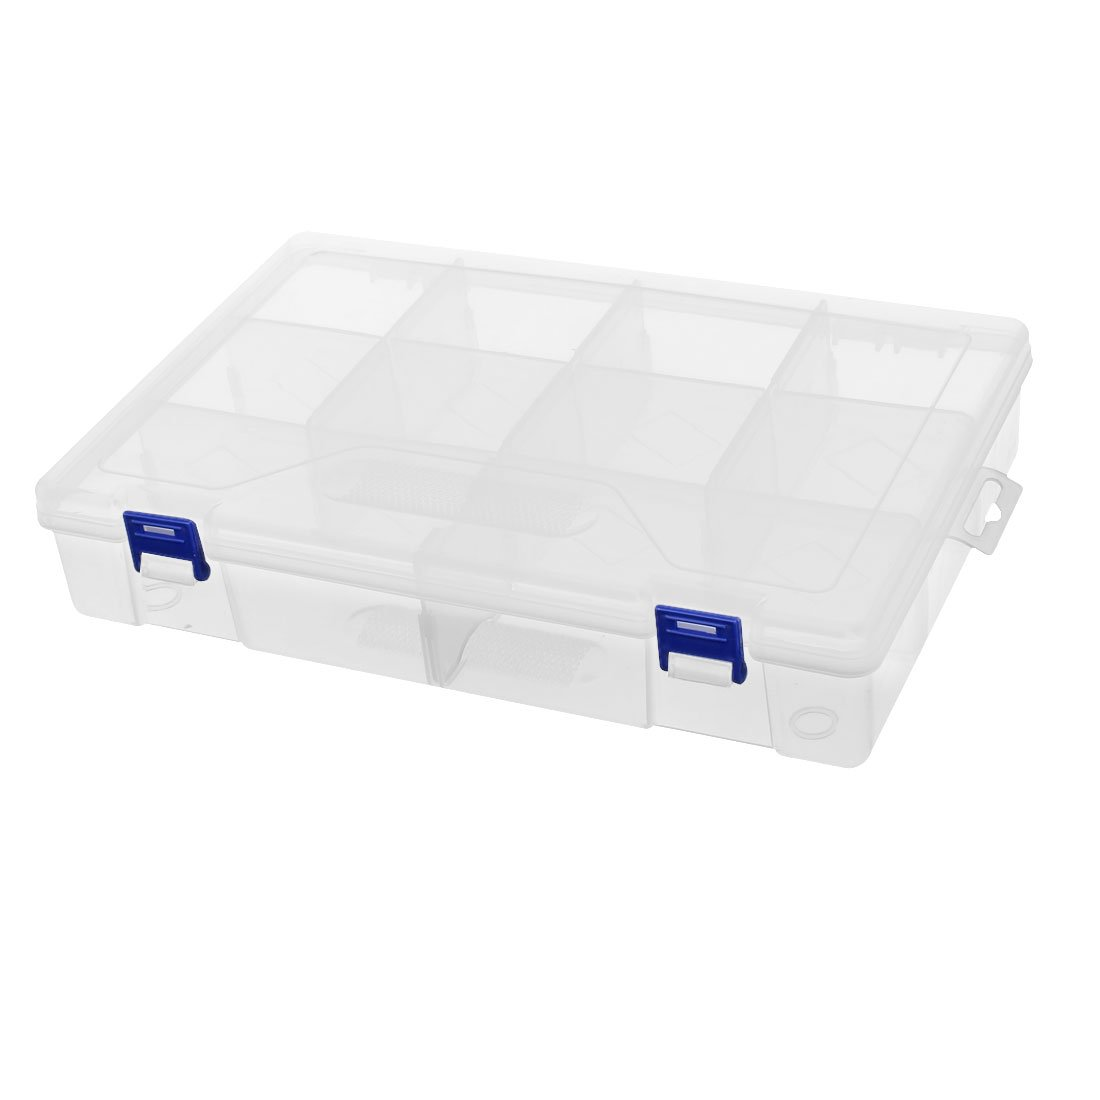 uxcell PP Plastic 10 Slots 2 Buckle Clear Component Storage Organizer Case Box DIY Tool